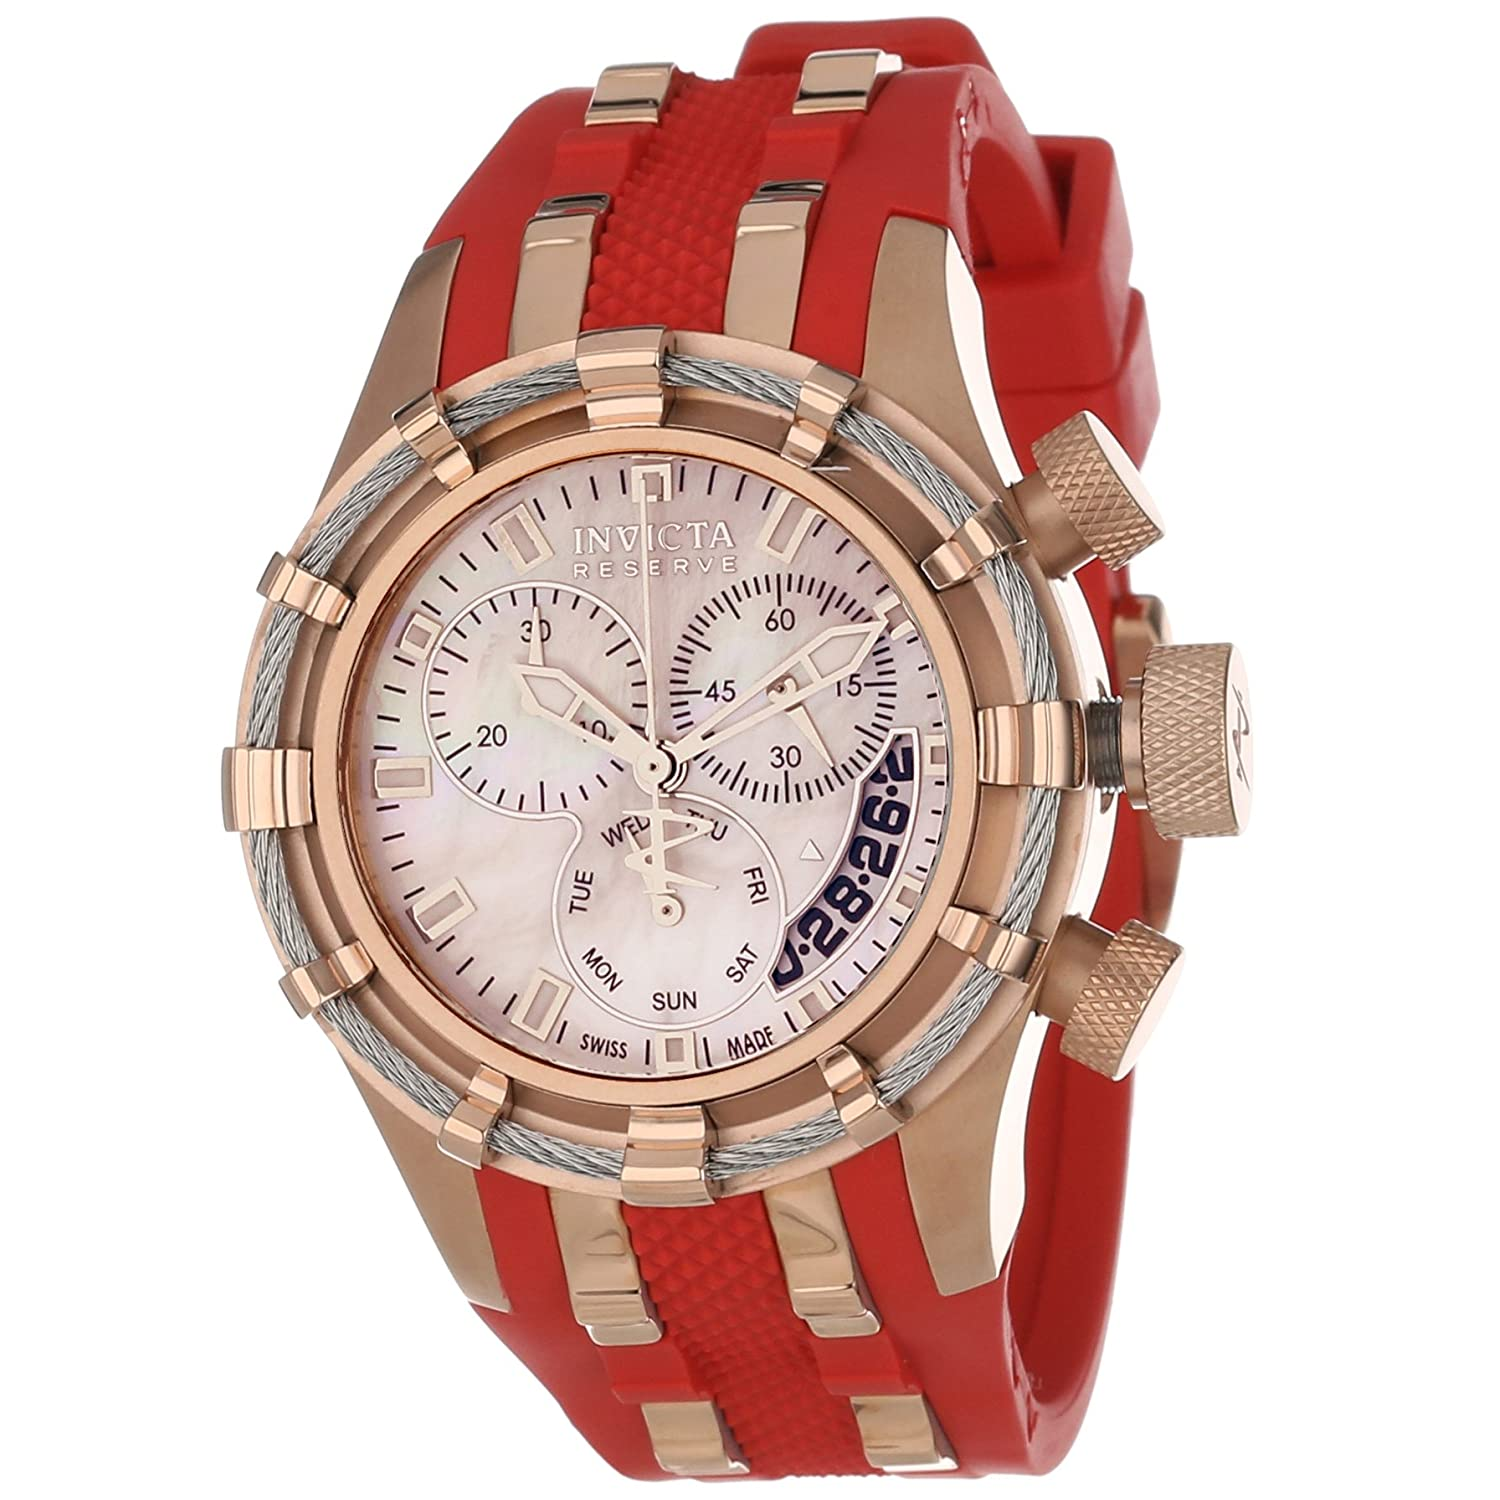 Invicta - Reserve Collection Bolt Chronograph Red Polyurethane Watch :  invicta watches watch time